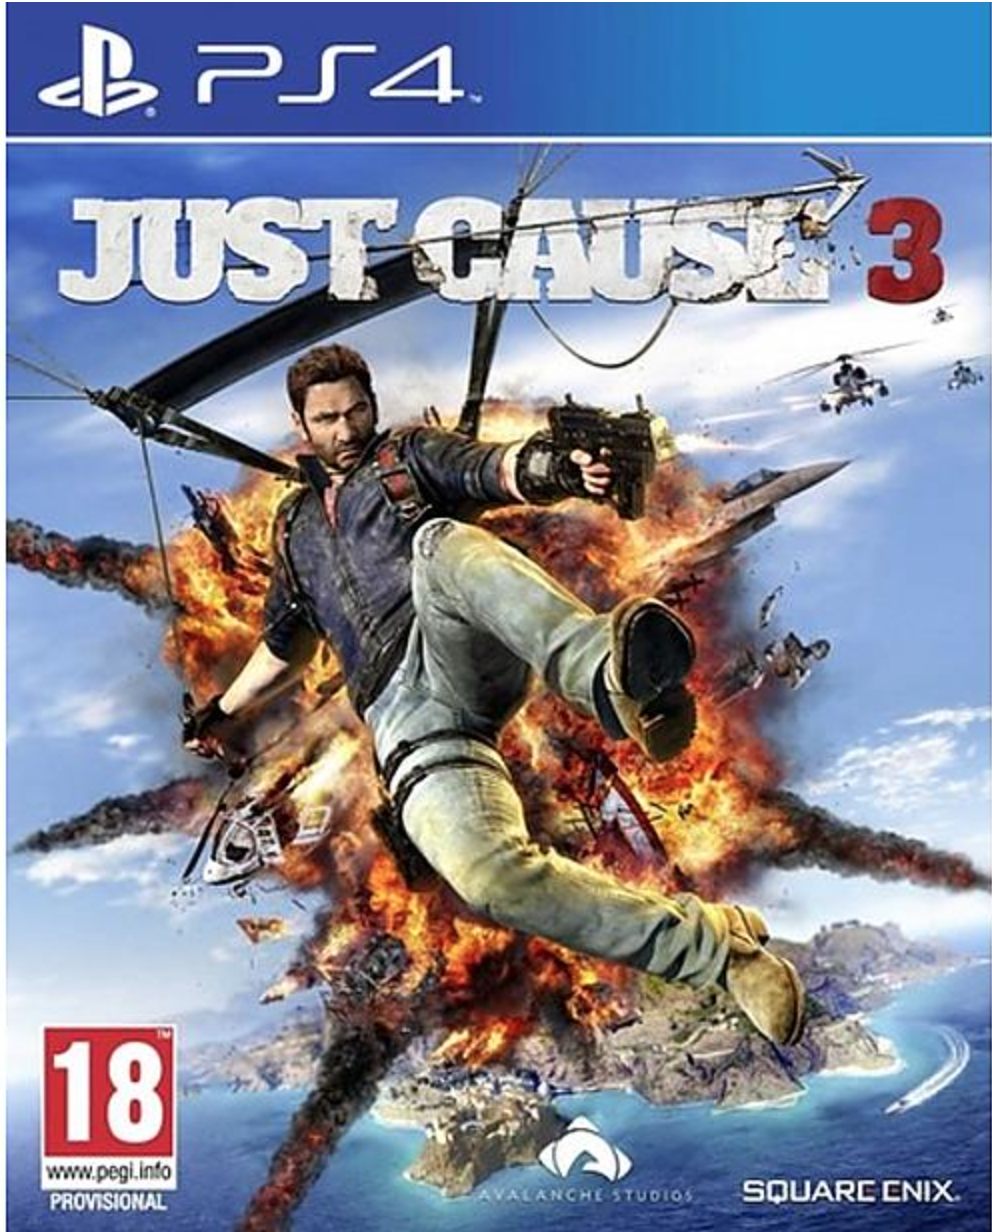 Just Cause 3 (PS4), Avalanche Studios